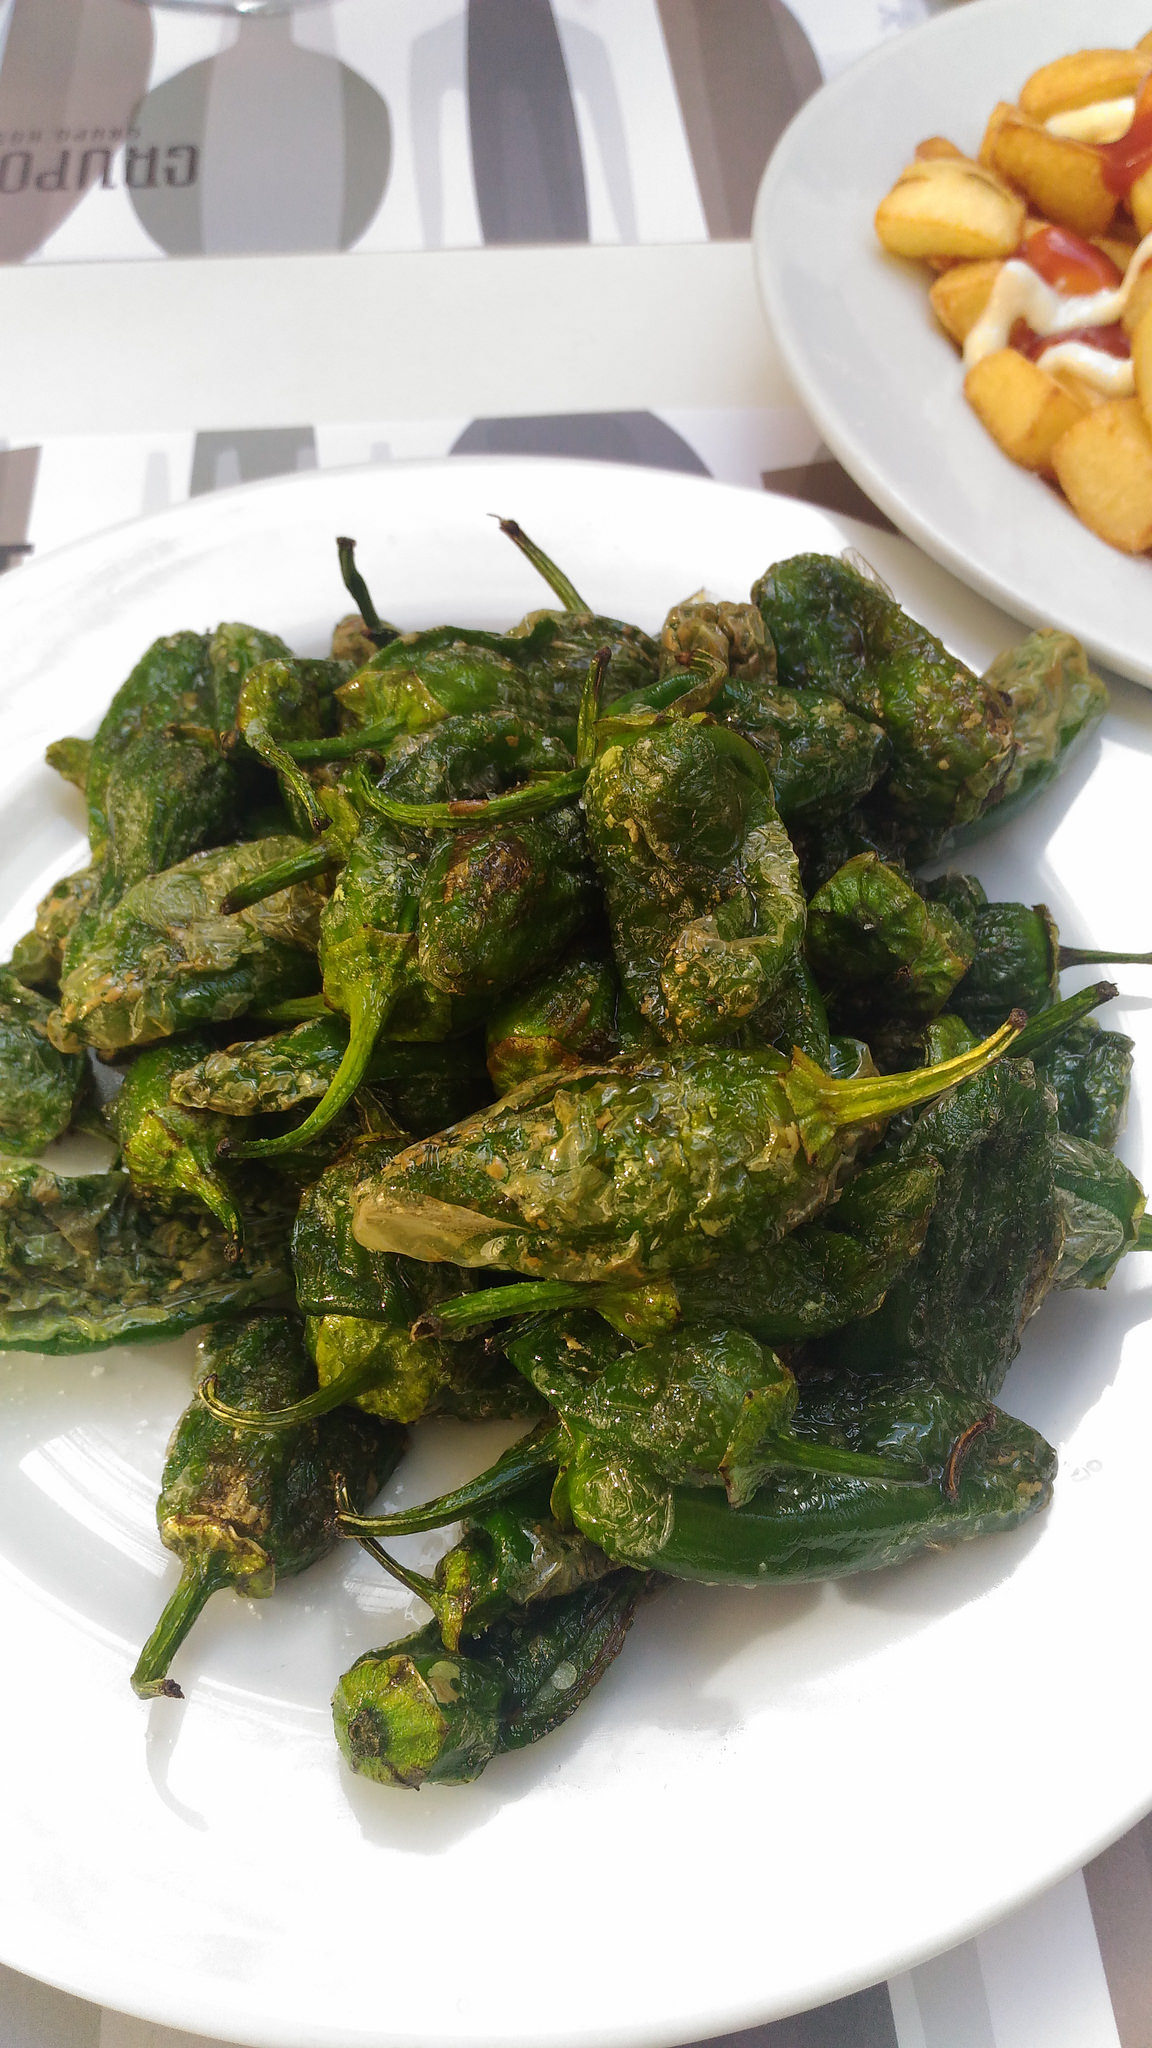 Pimientos de Padrón (fried padron peppers)